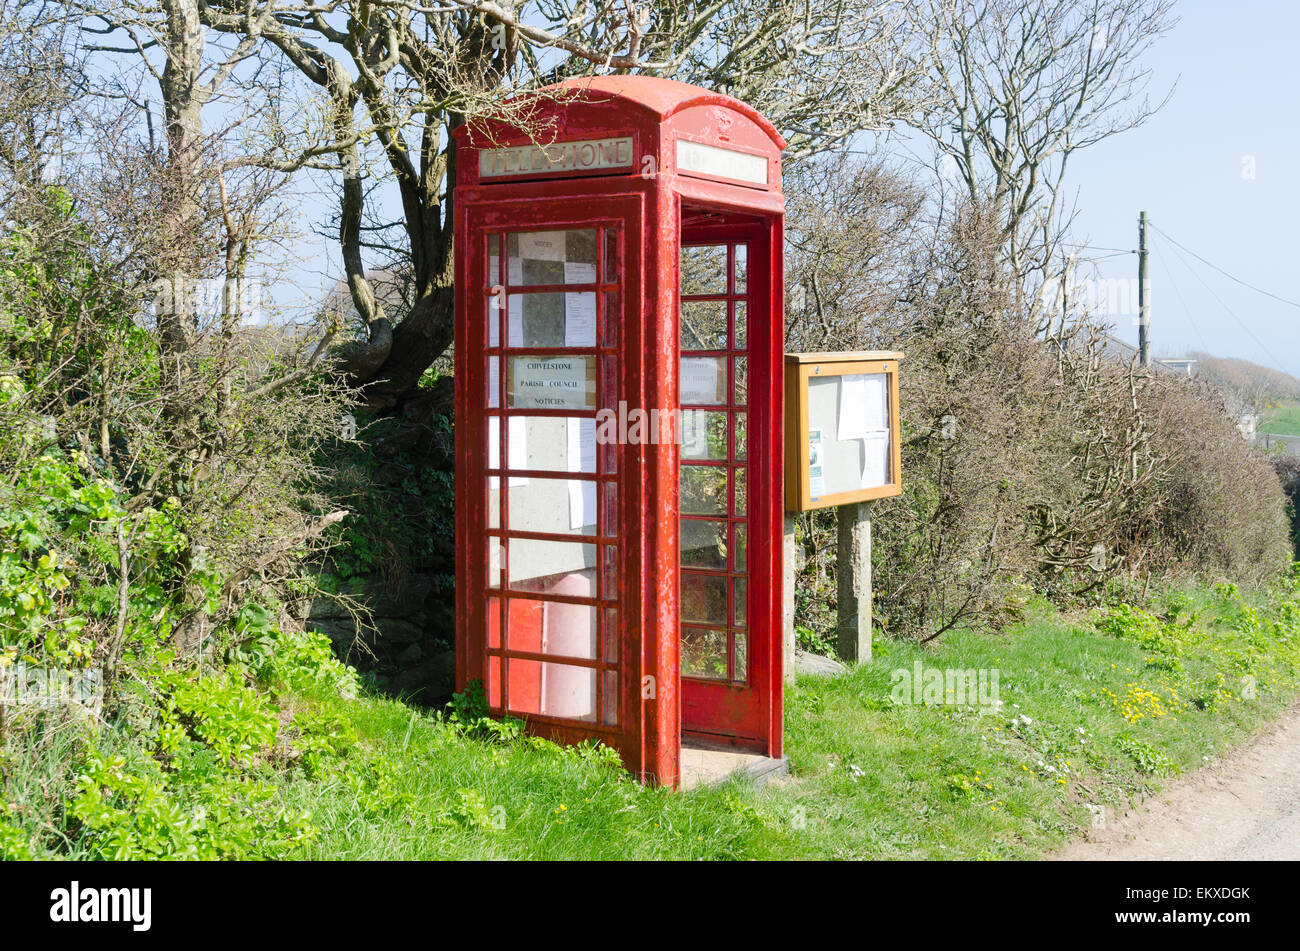 Old telephone box used for parish council notices in the Devon village of East Prawle - Stock Image